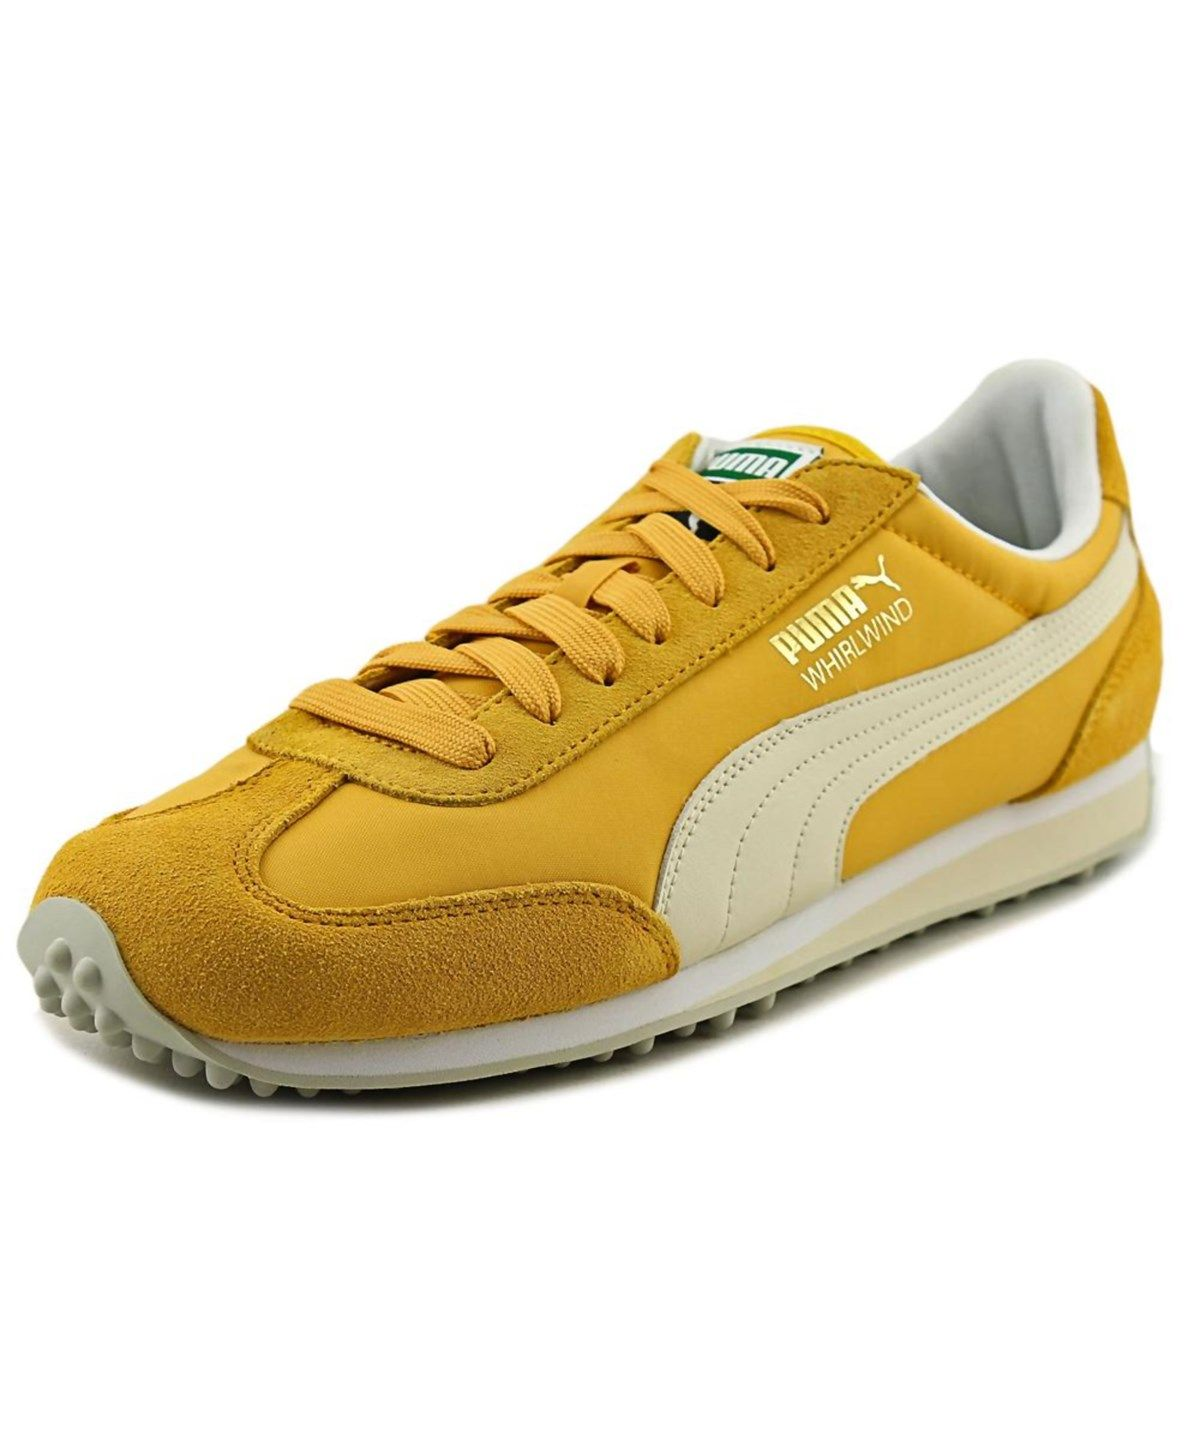 f902fc1373a1 PUMA Puma Whirlwind Classic Suede Fashion Sneakers .  puma  shoes  sneakers